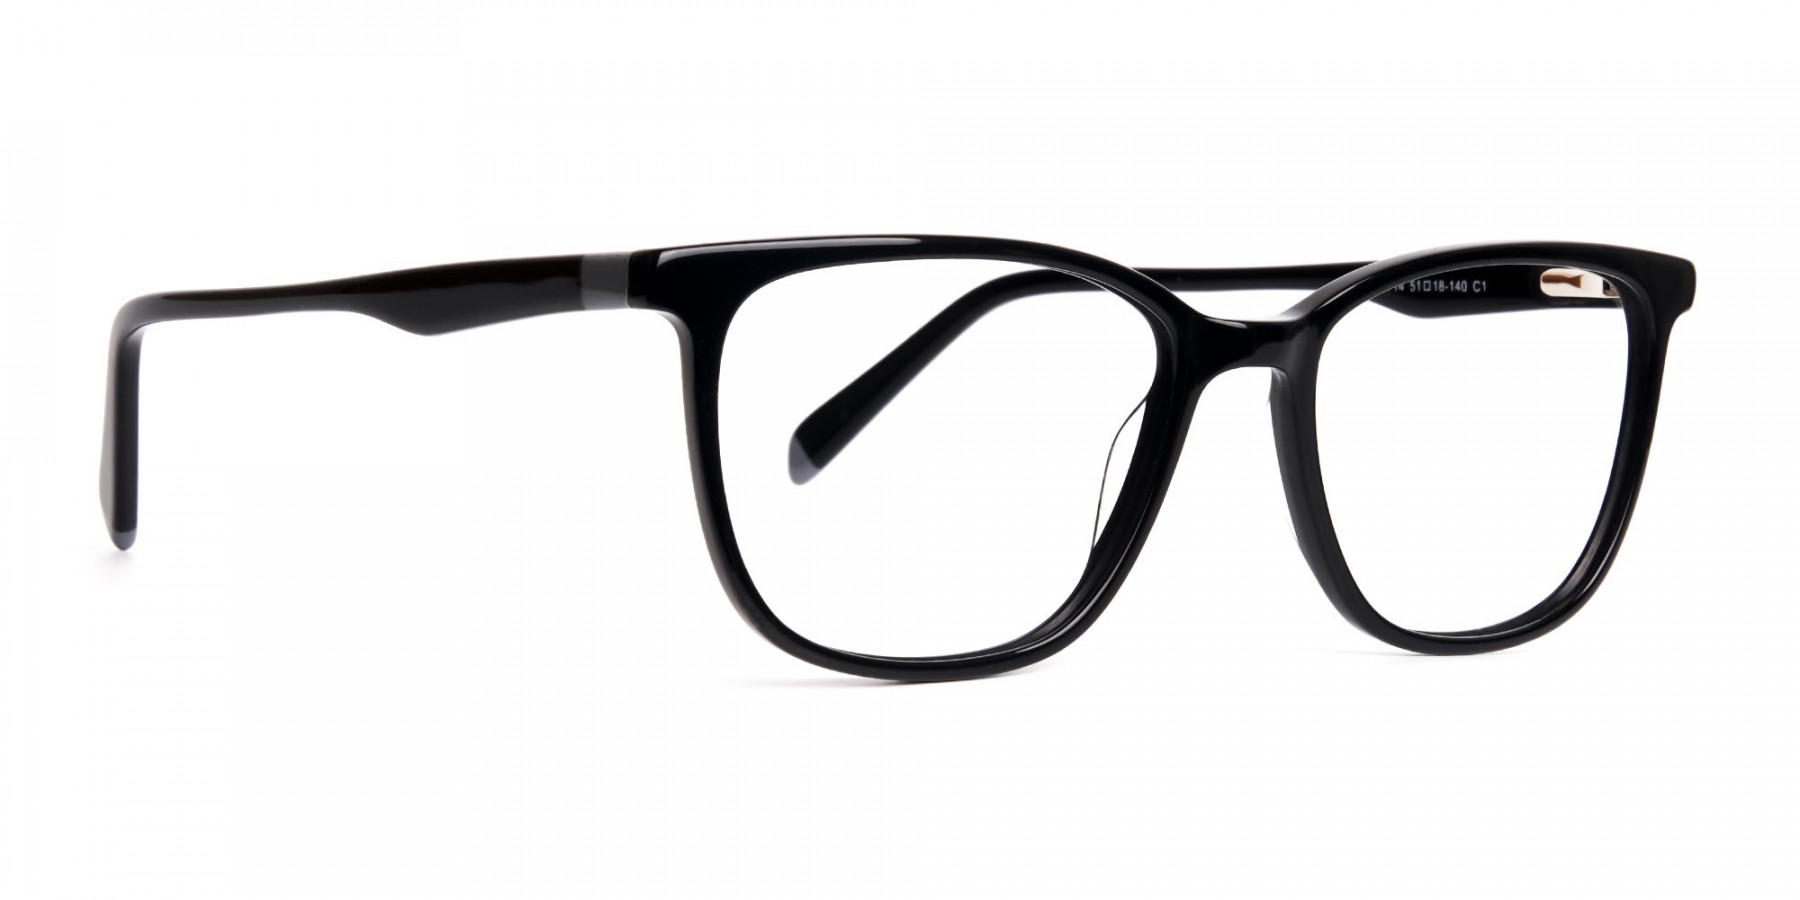 New-shiny-and-glossy-Black-Wayfarer-and-Rectangular-Glasses-Frames-1